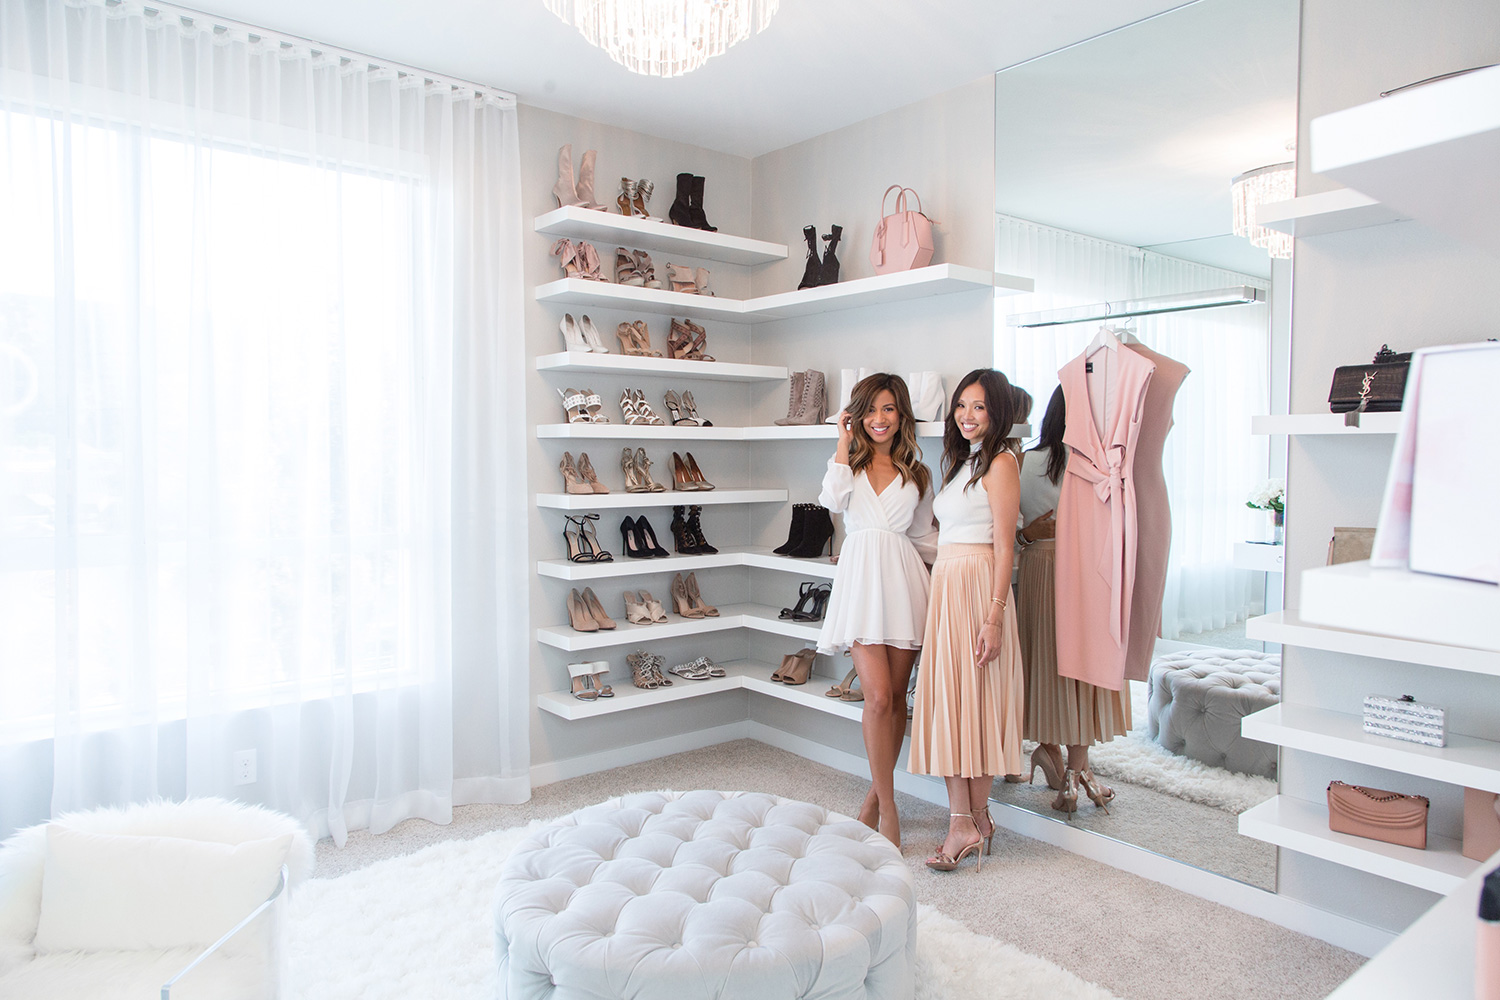 Jessi Malay and Lisa Adams from LA Closet Design